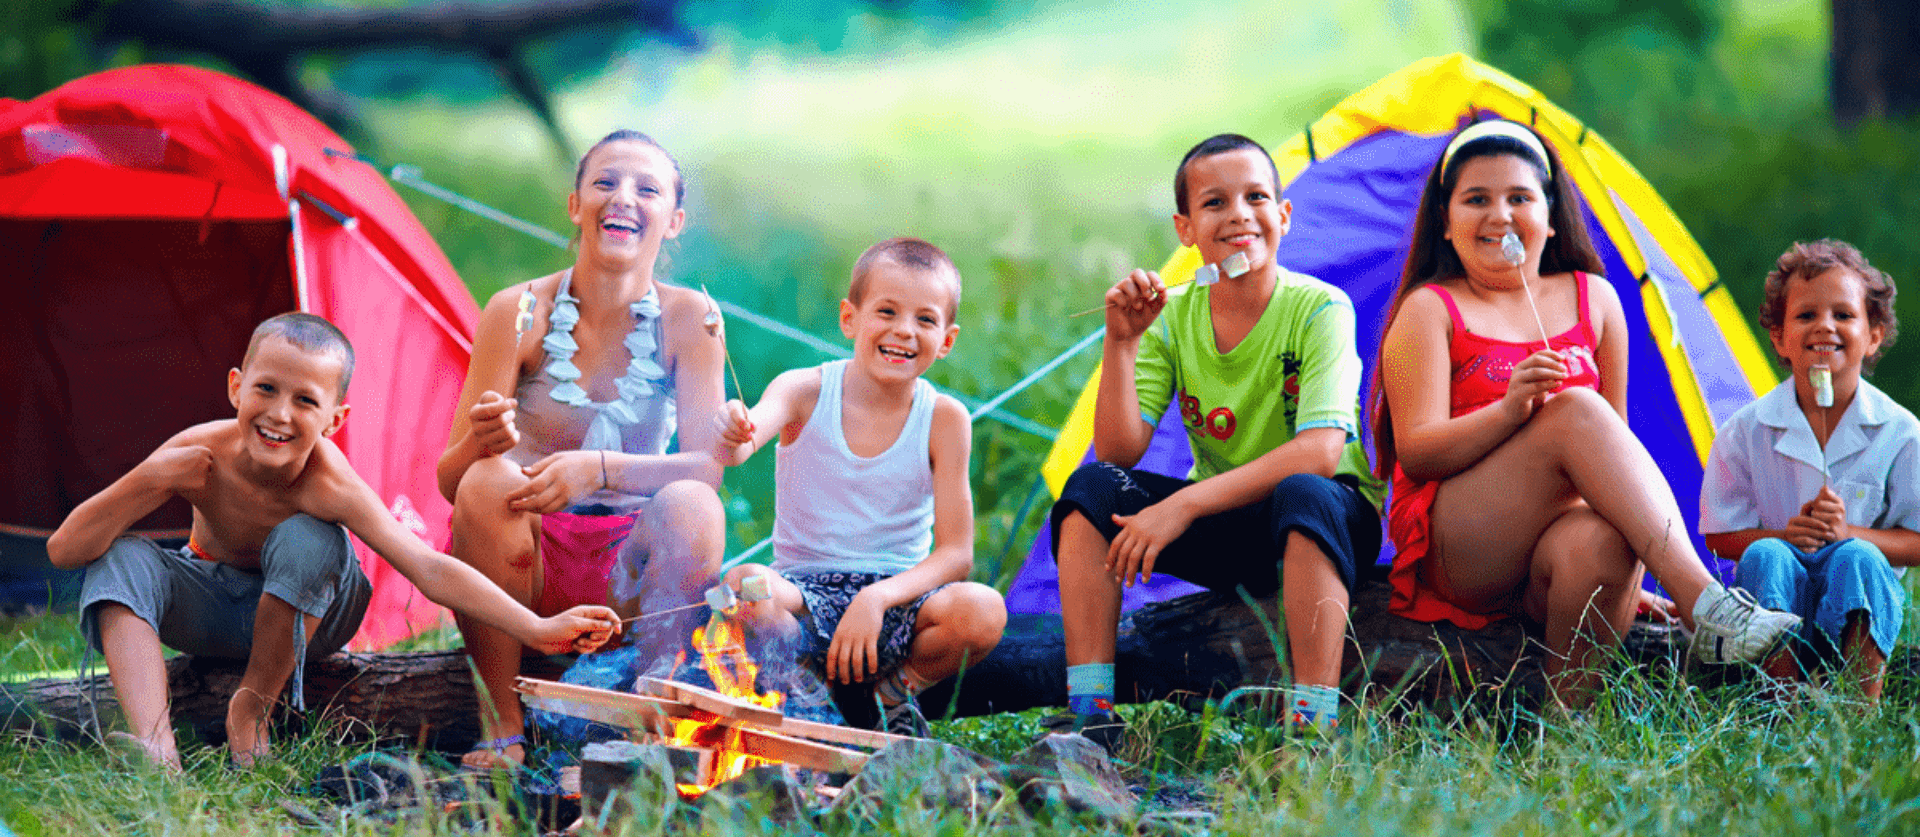 7 Summer Camp Ideas for Your Kids' Camp